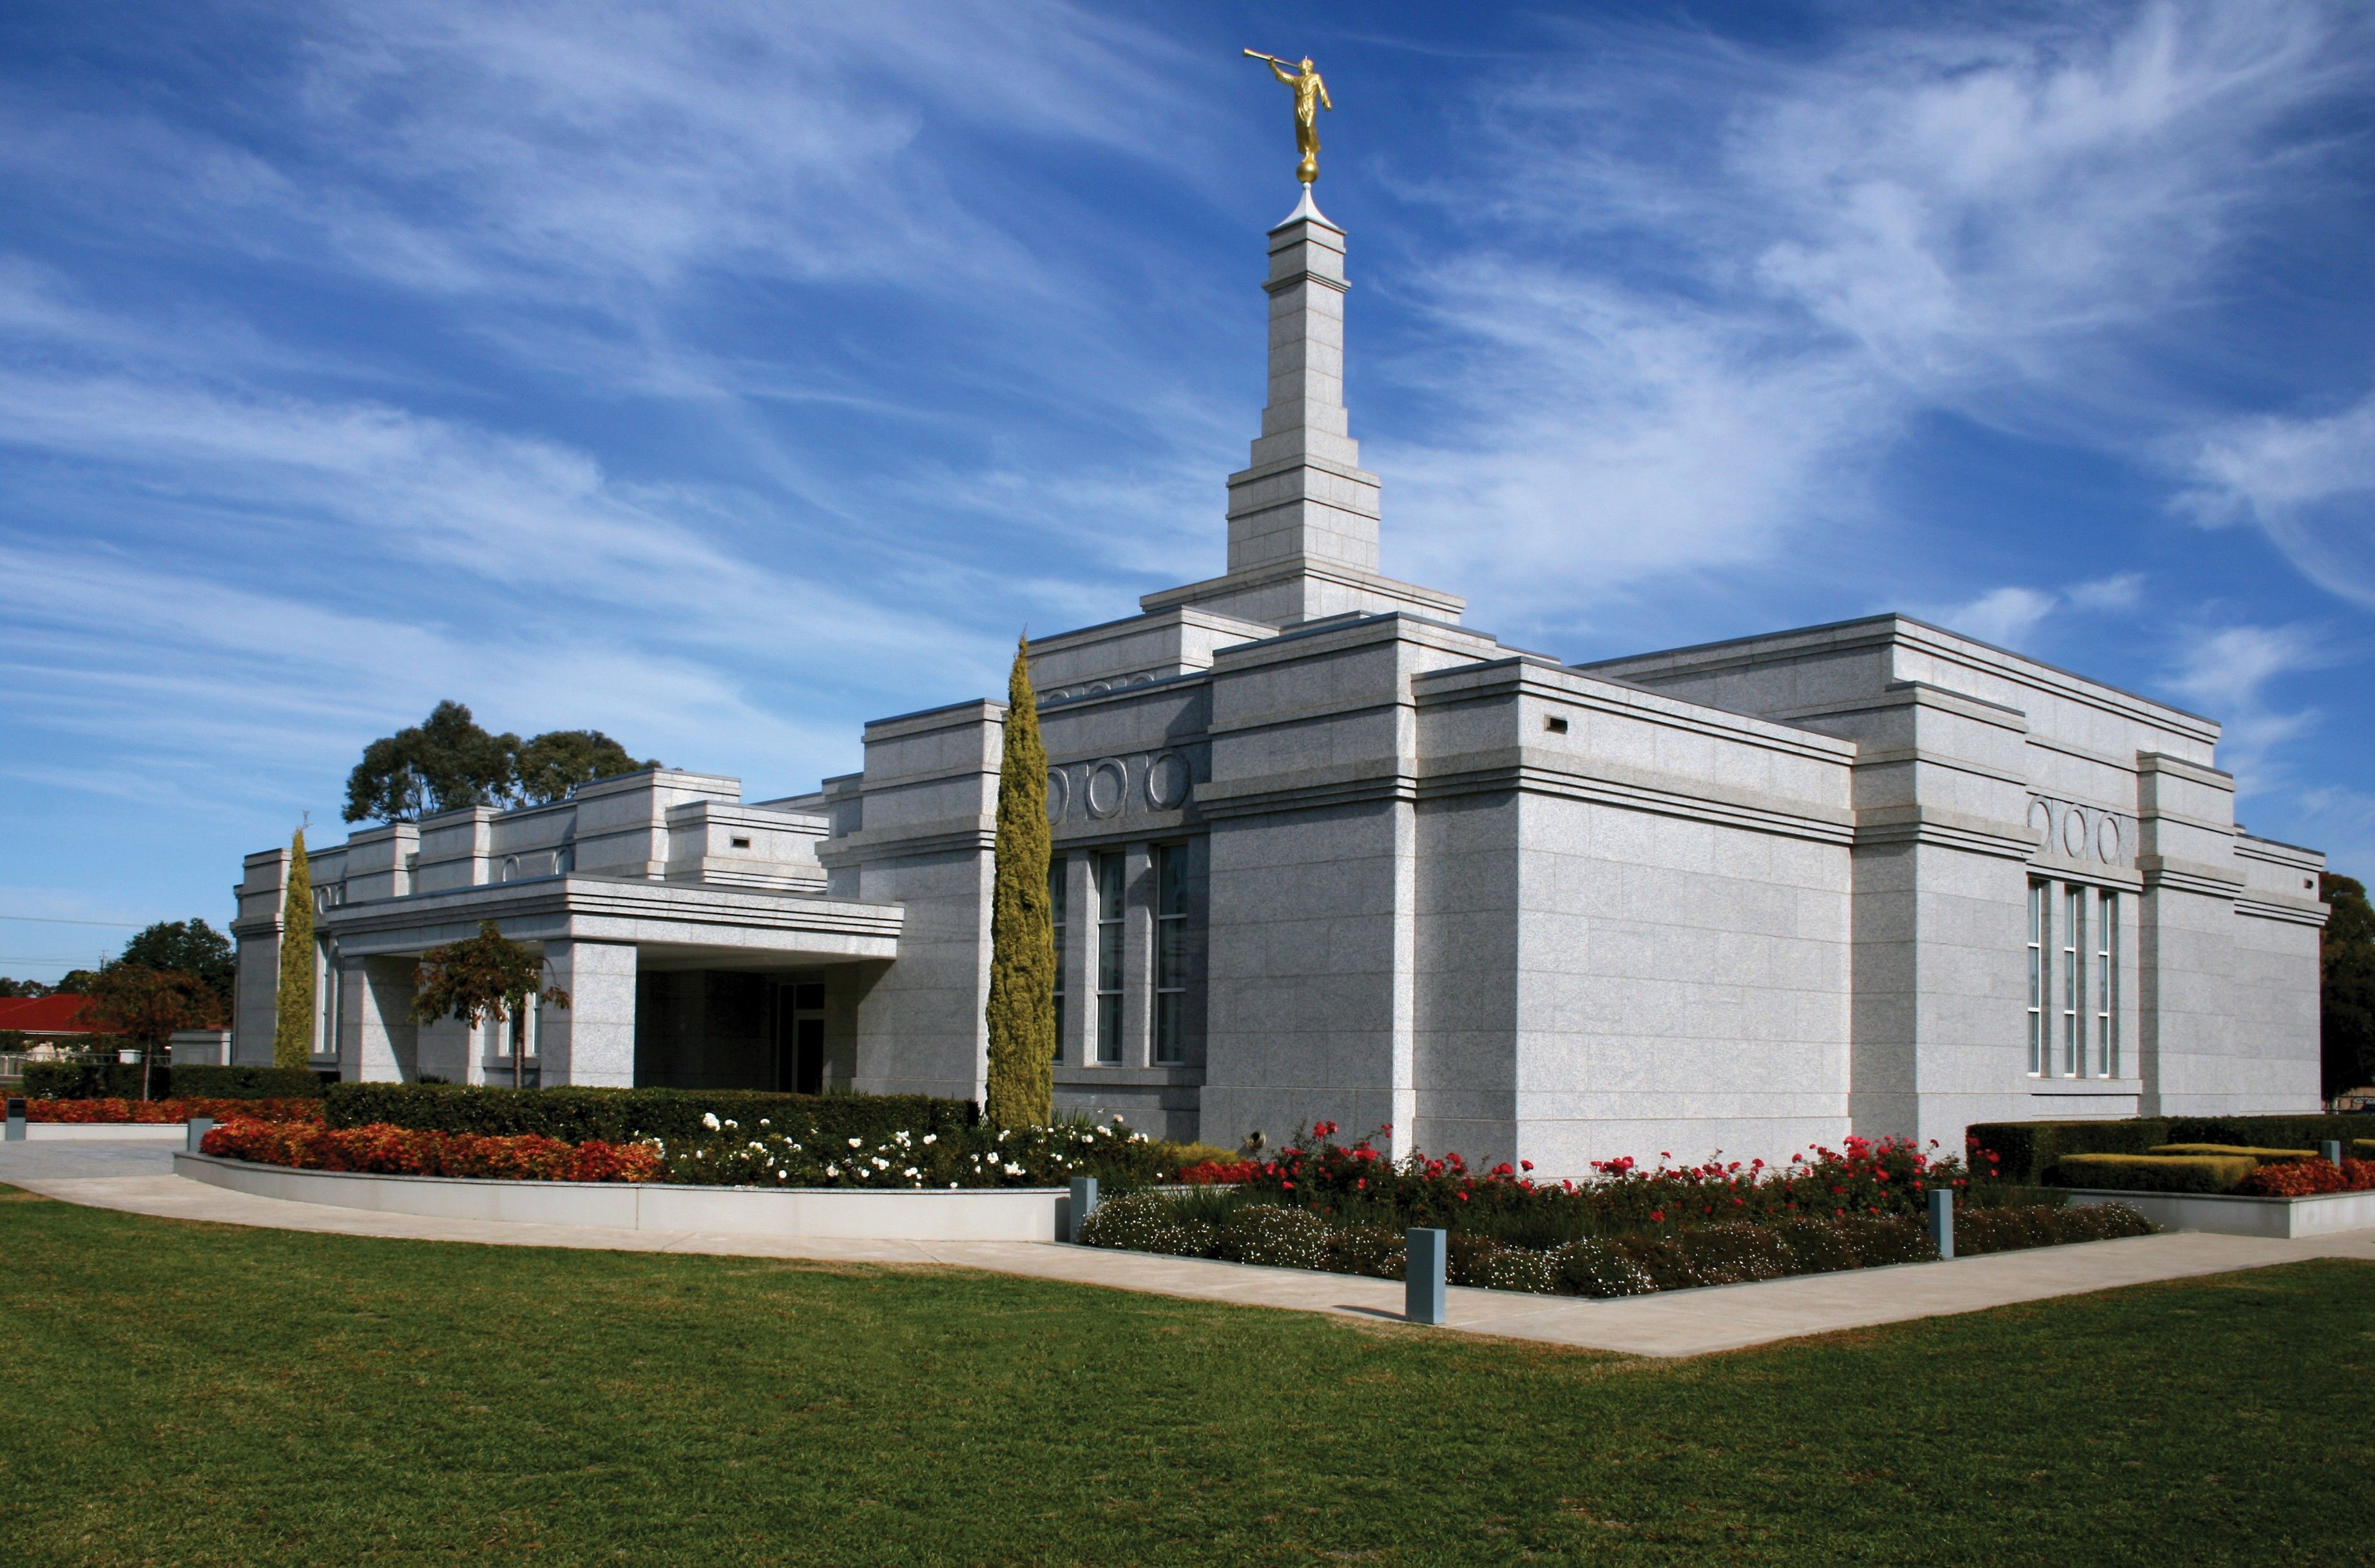 An exterior view of the Adelaide Australia Temple and grounds.